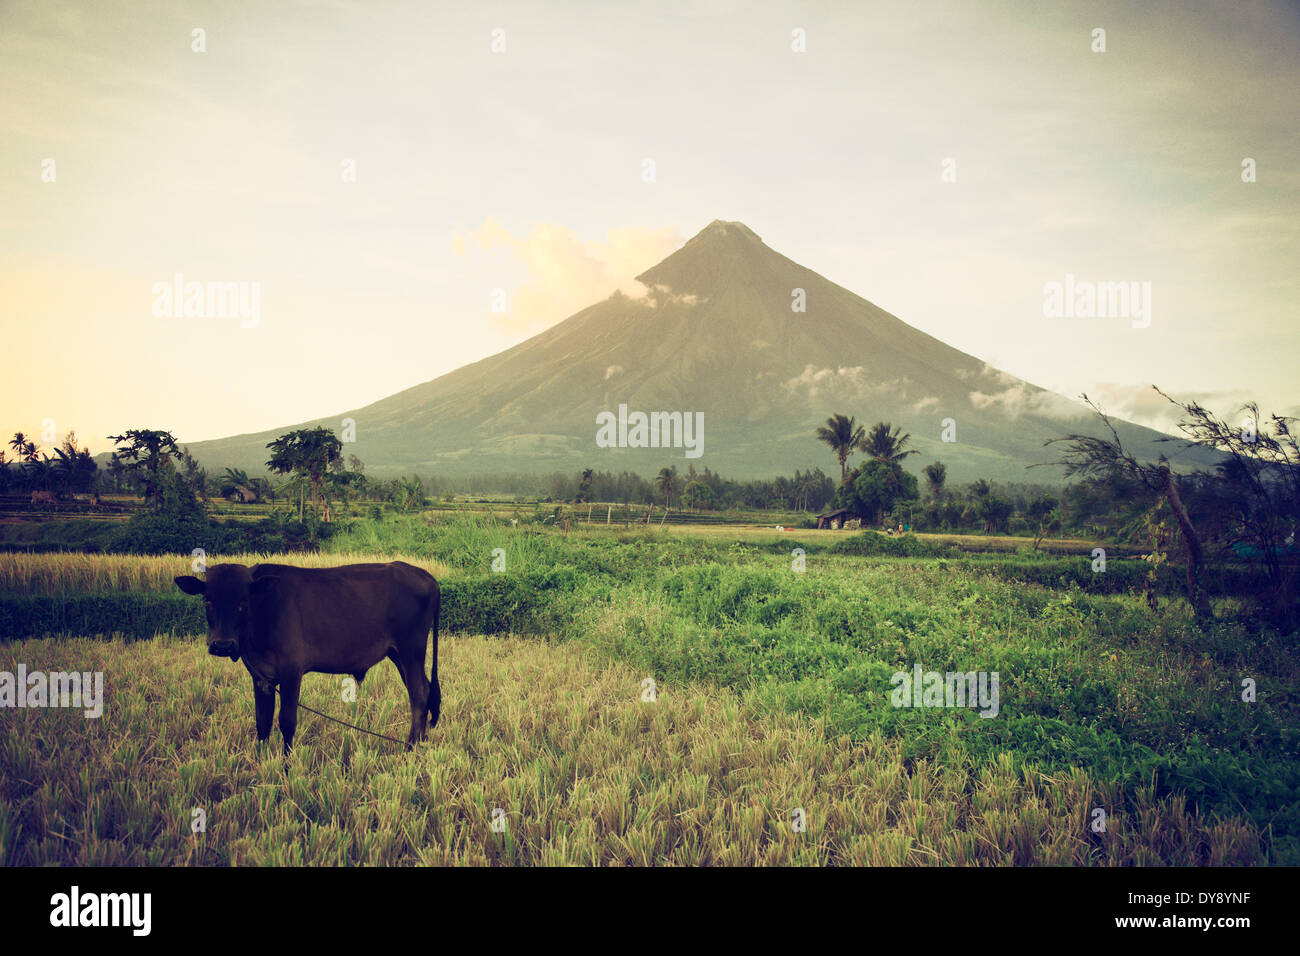 Philippines, Souteastern Luzon, Bicol, volcan Mayon Photo Stock